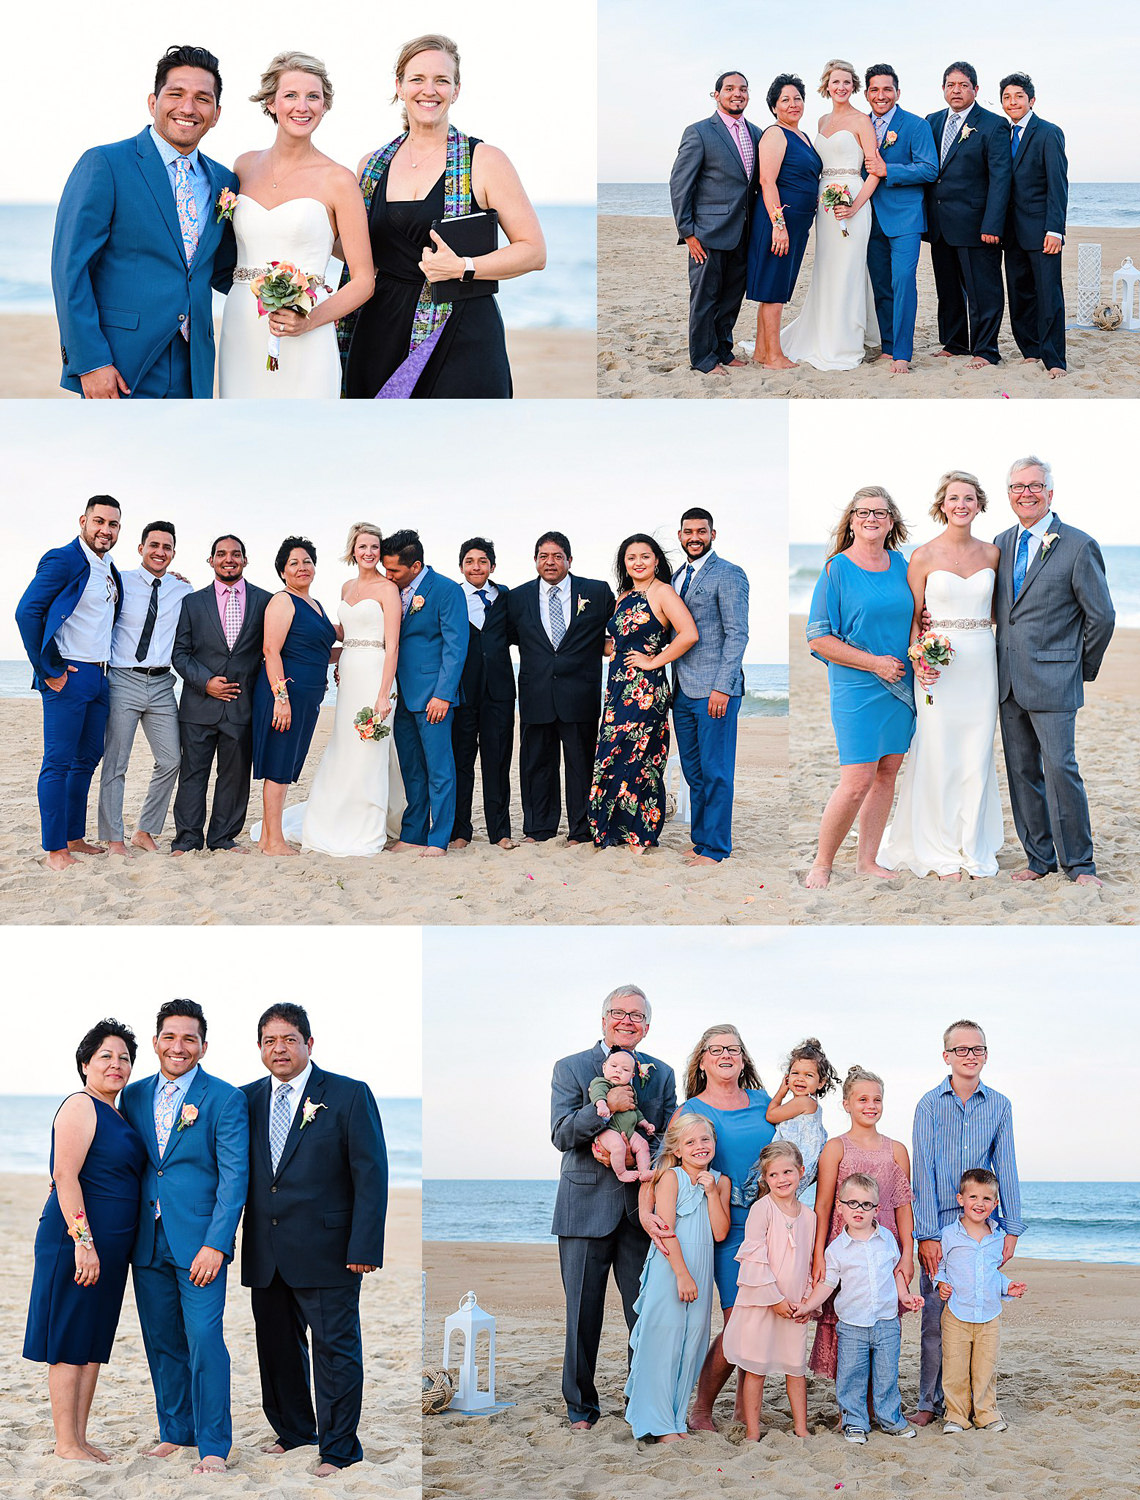 sandbridge-beach-wedding-group-photos-melissa-bliss-photography.jpg